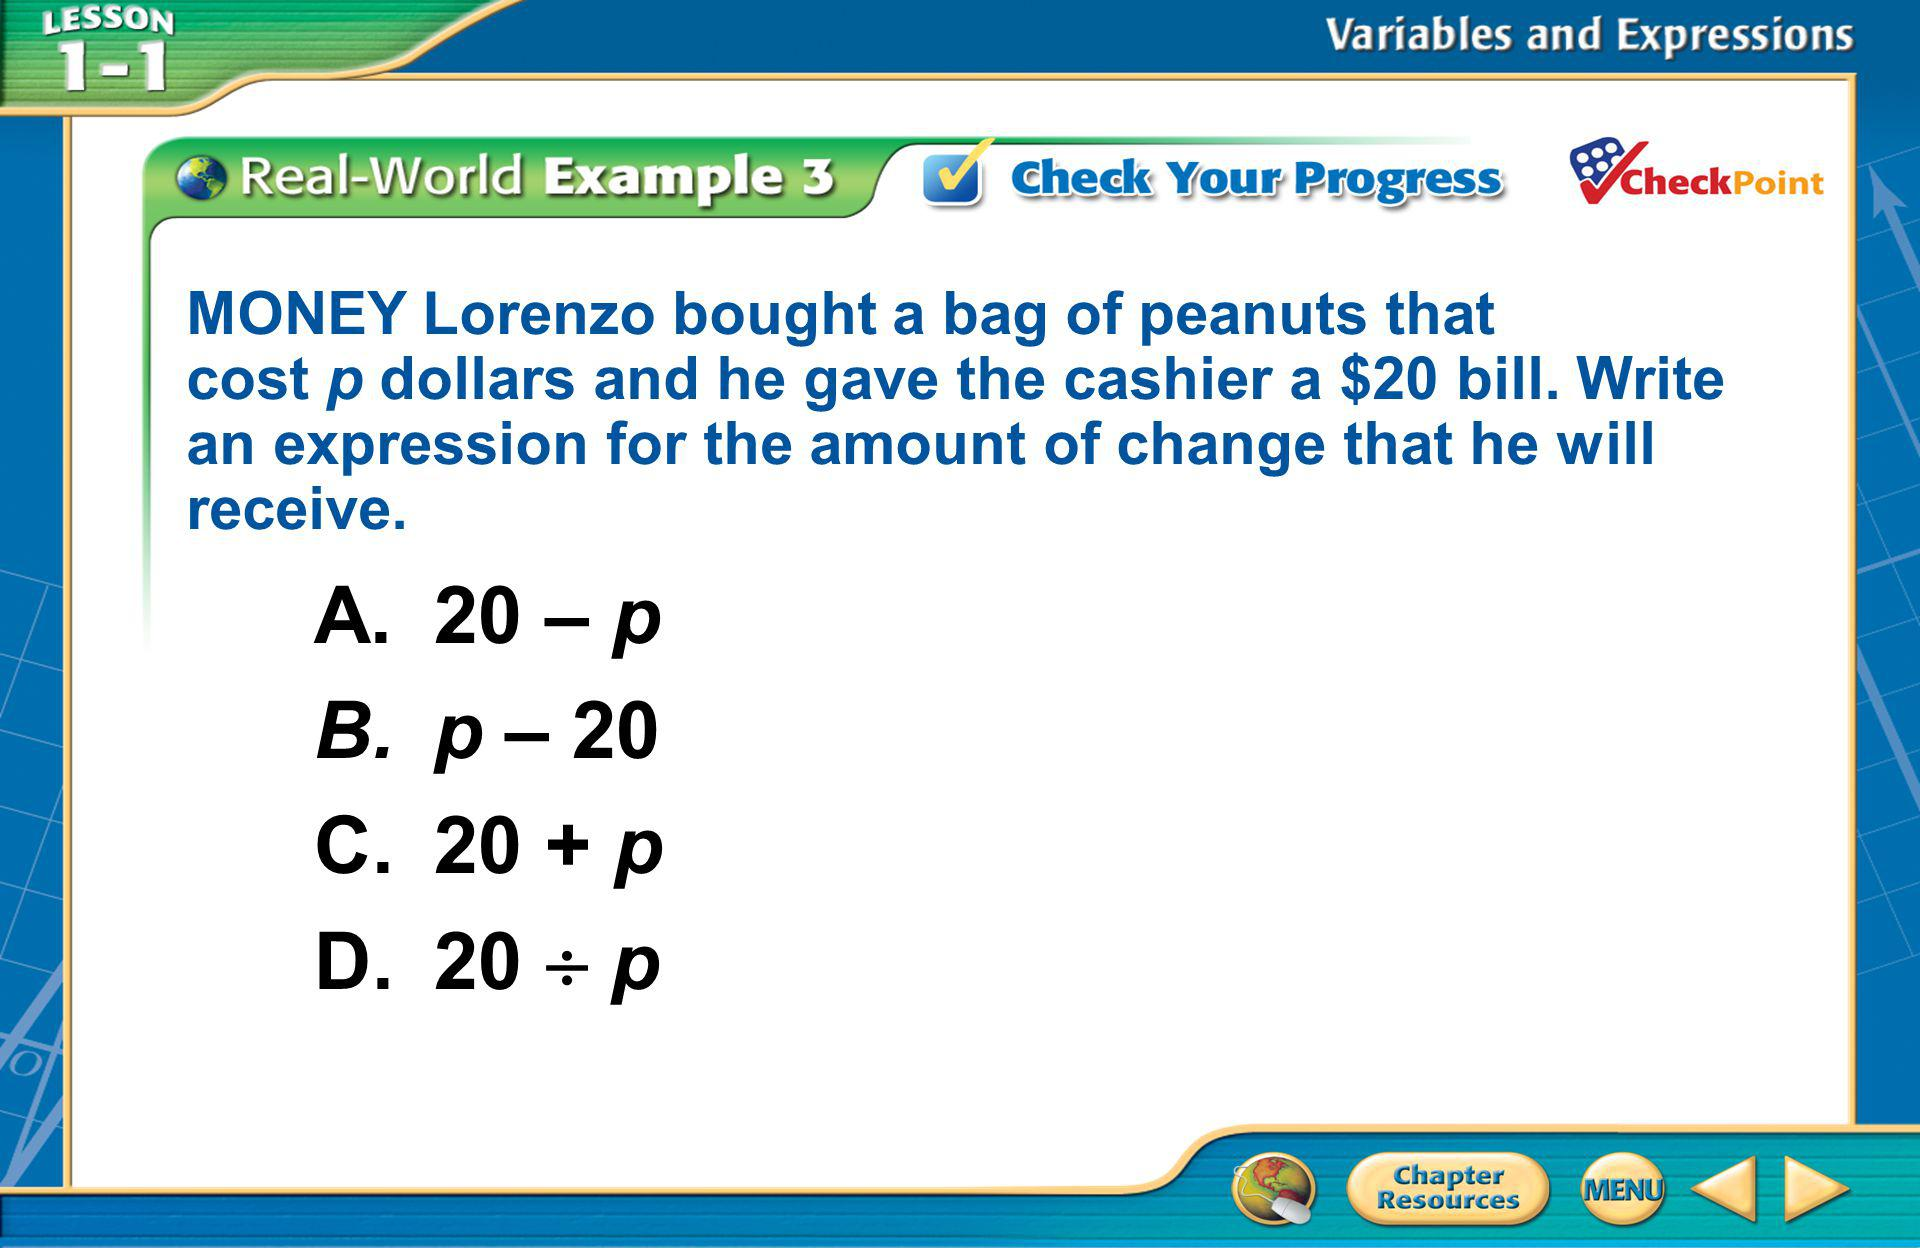 [Enter question here] A.20 – p B.p – 20 C.20 + p D.20  p MONEY Lorenzo bought a bag of peanuts that cost p dollars and he gave the cashier a $20 bill